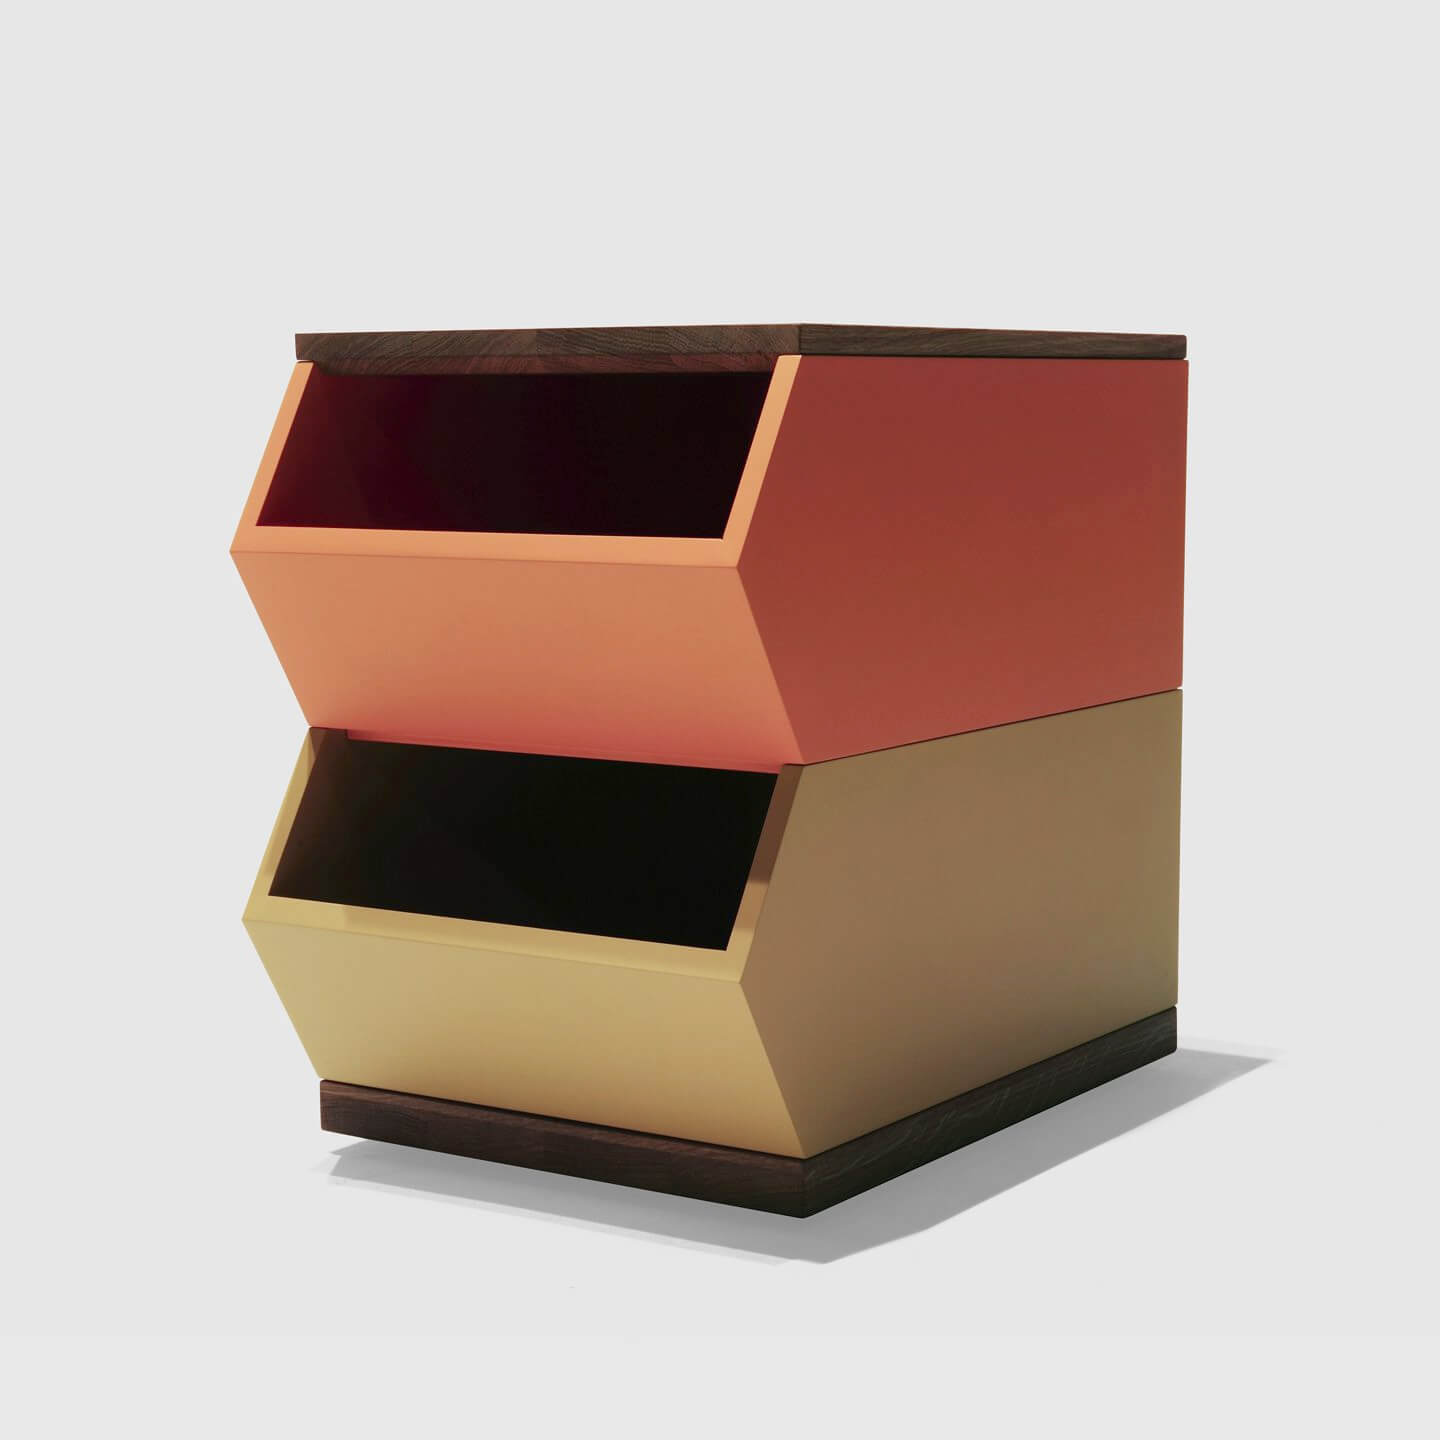 accessories-remix-containers-the-hansen-family-1